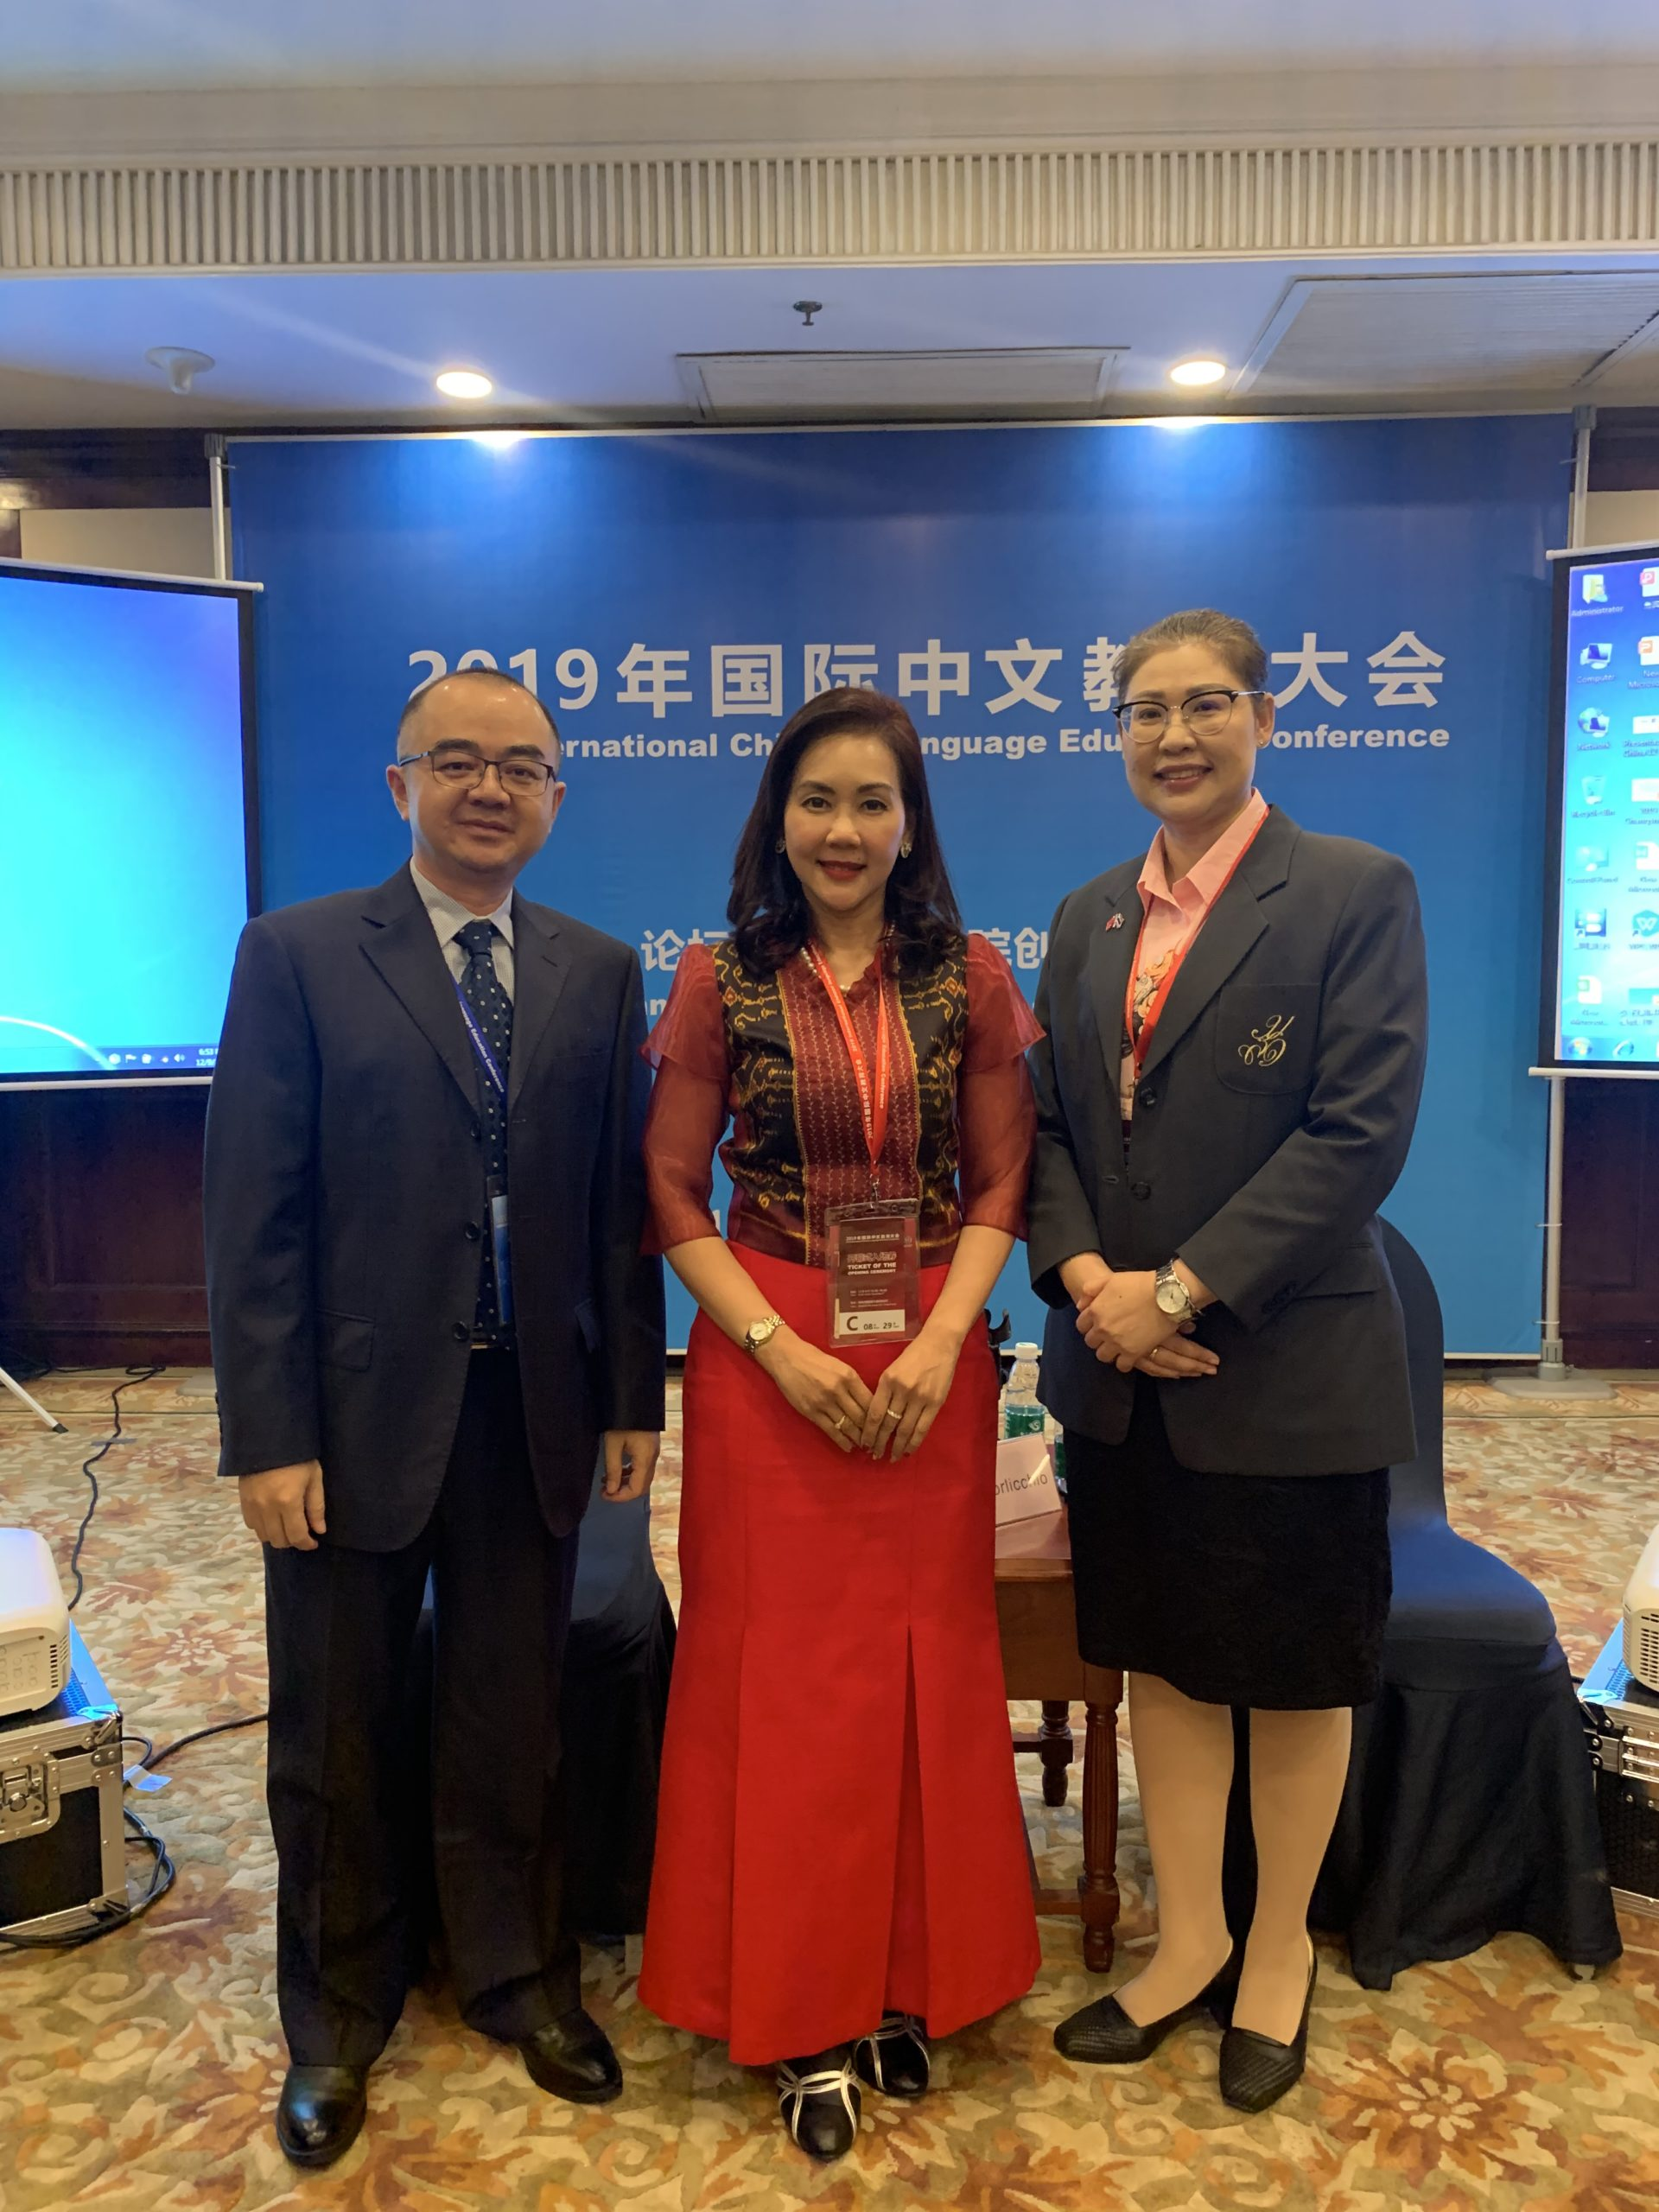 CISDUS Delegation Back from 2019 International Chinese Language Education Conference